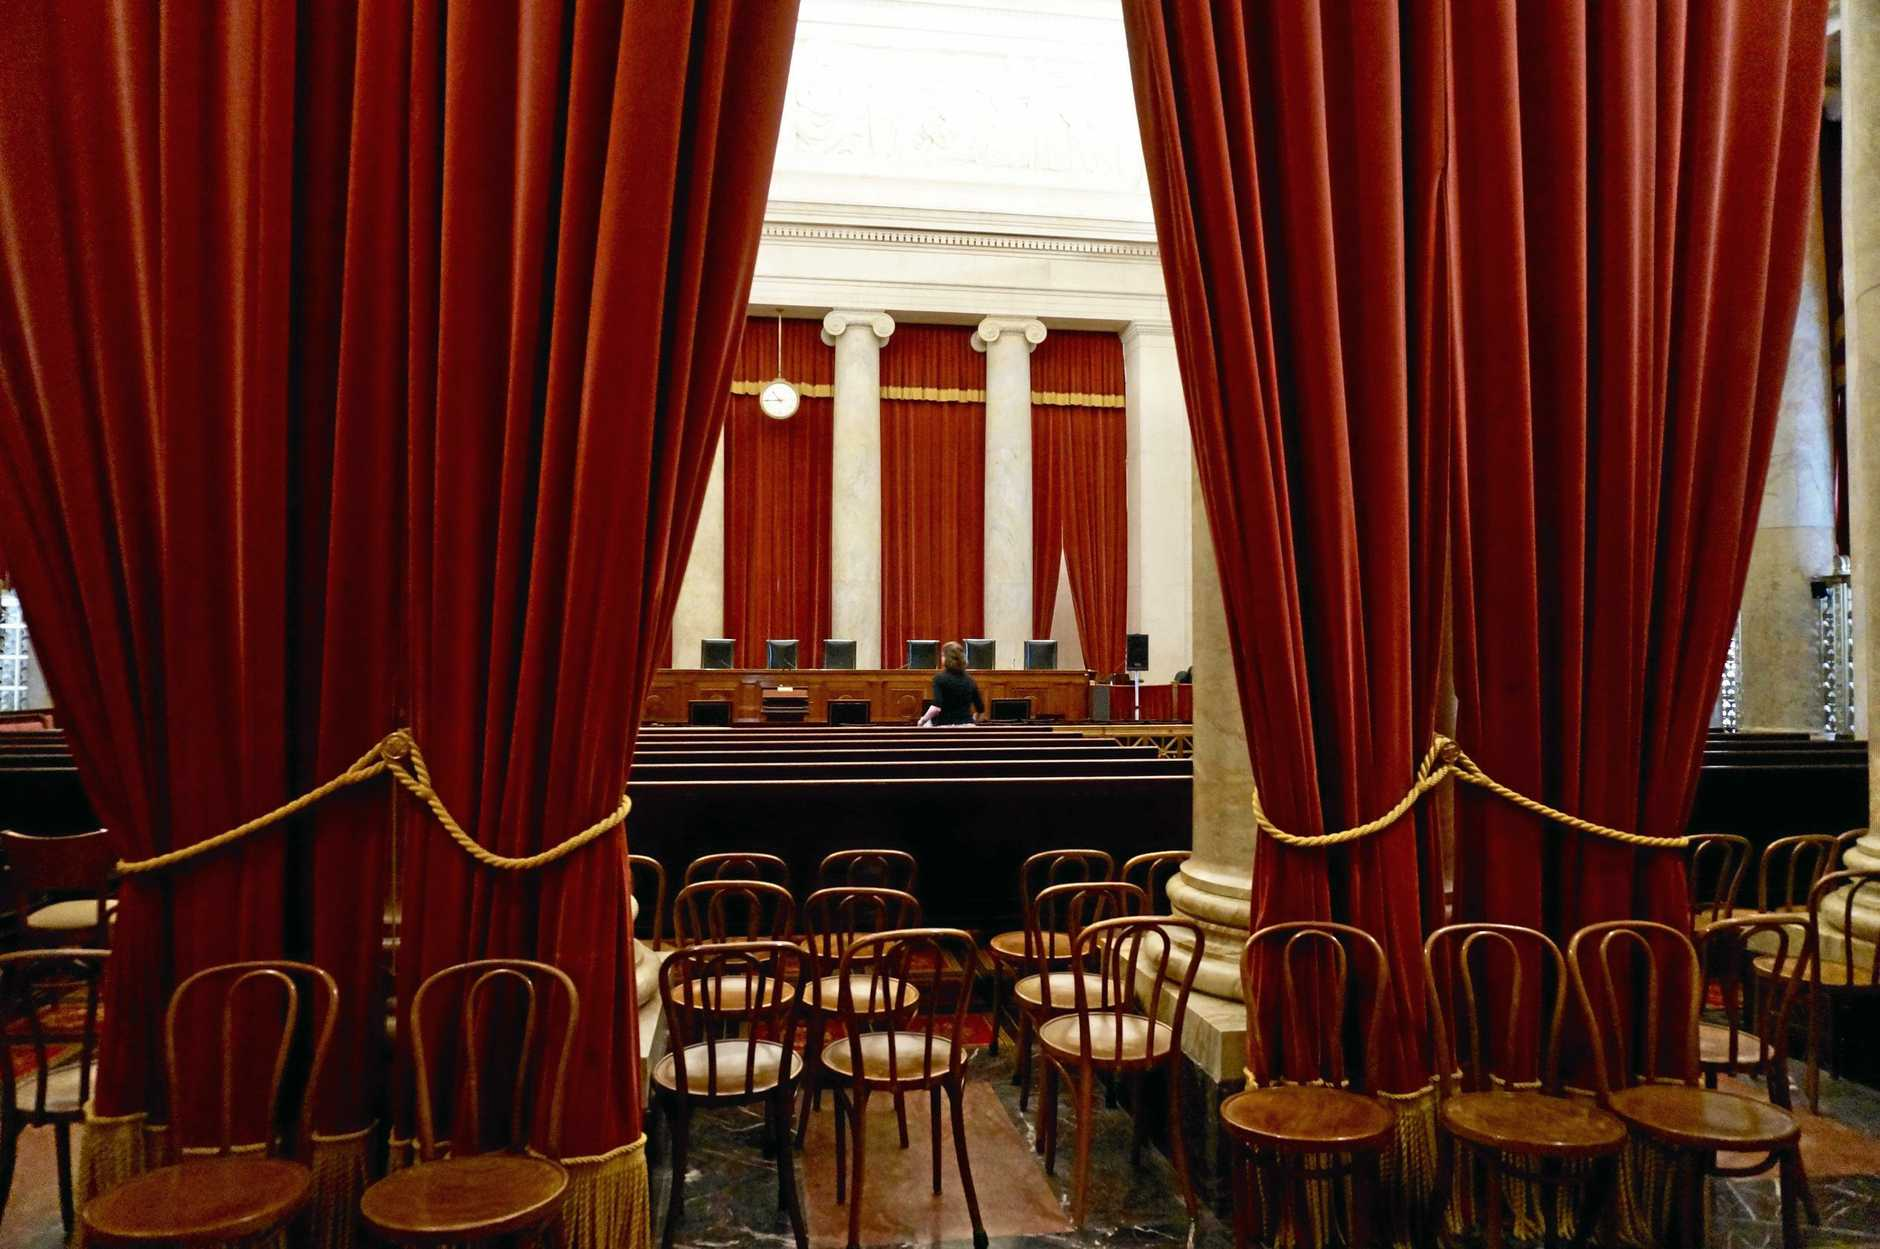 Washington DC is steeped in United States history. This is the Supreme Court which is open to the public.